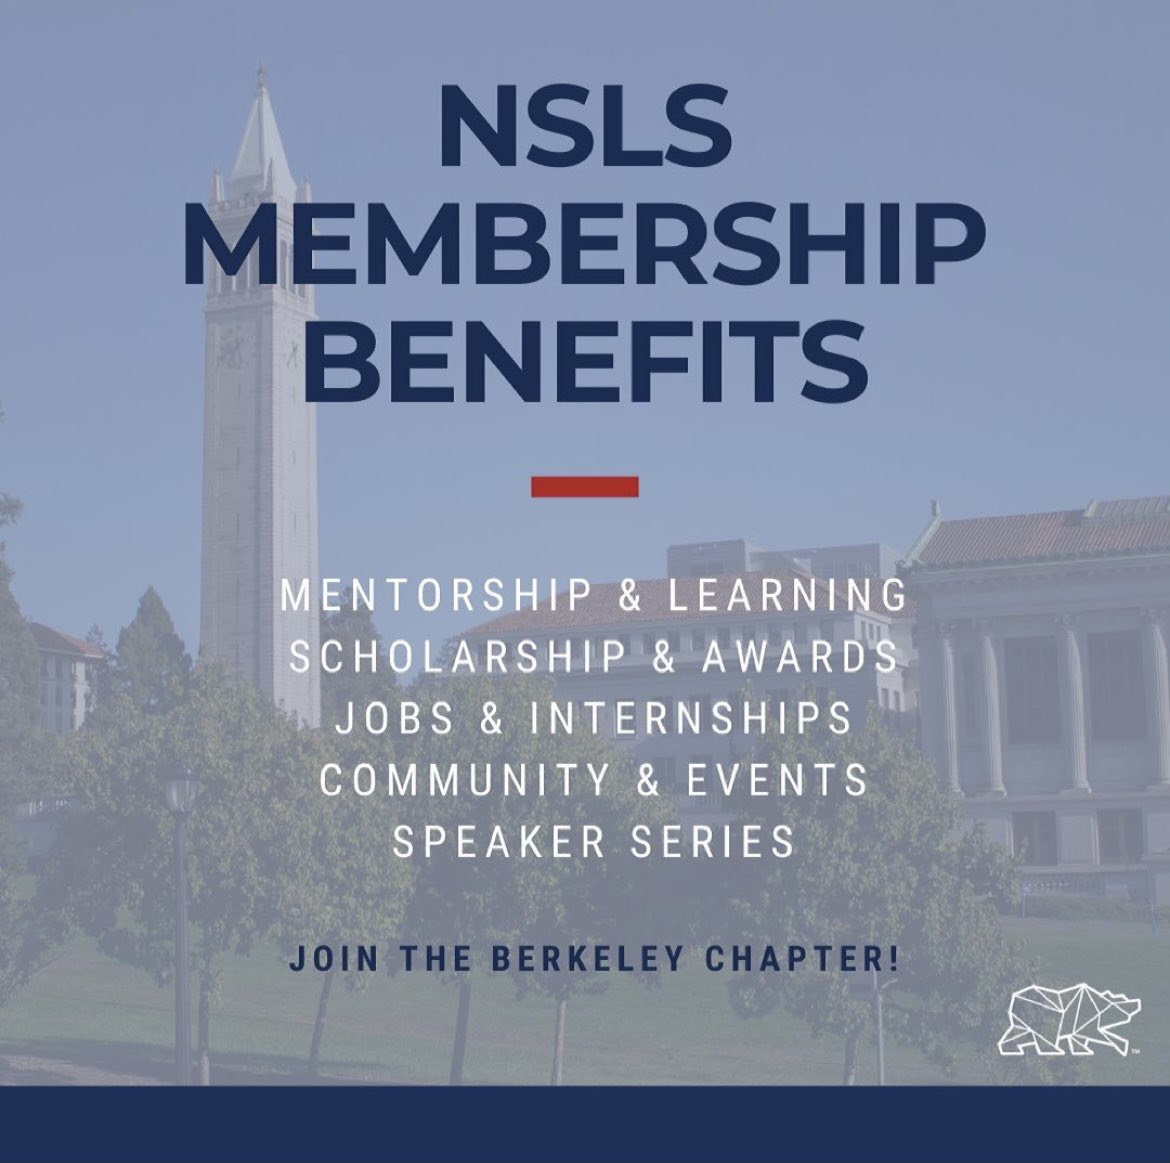 Who doesn't need these benefits? The NSLS offers this to members and so much more! #theNSLS #UCBerkeley #GoBears #Leadership #Success